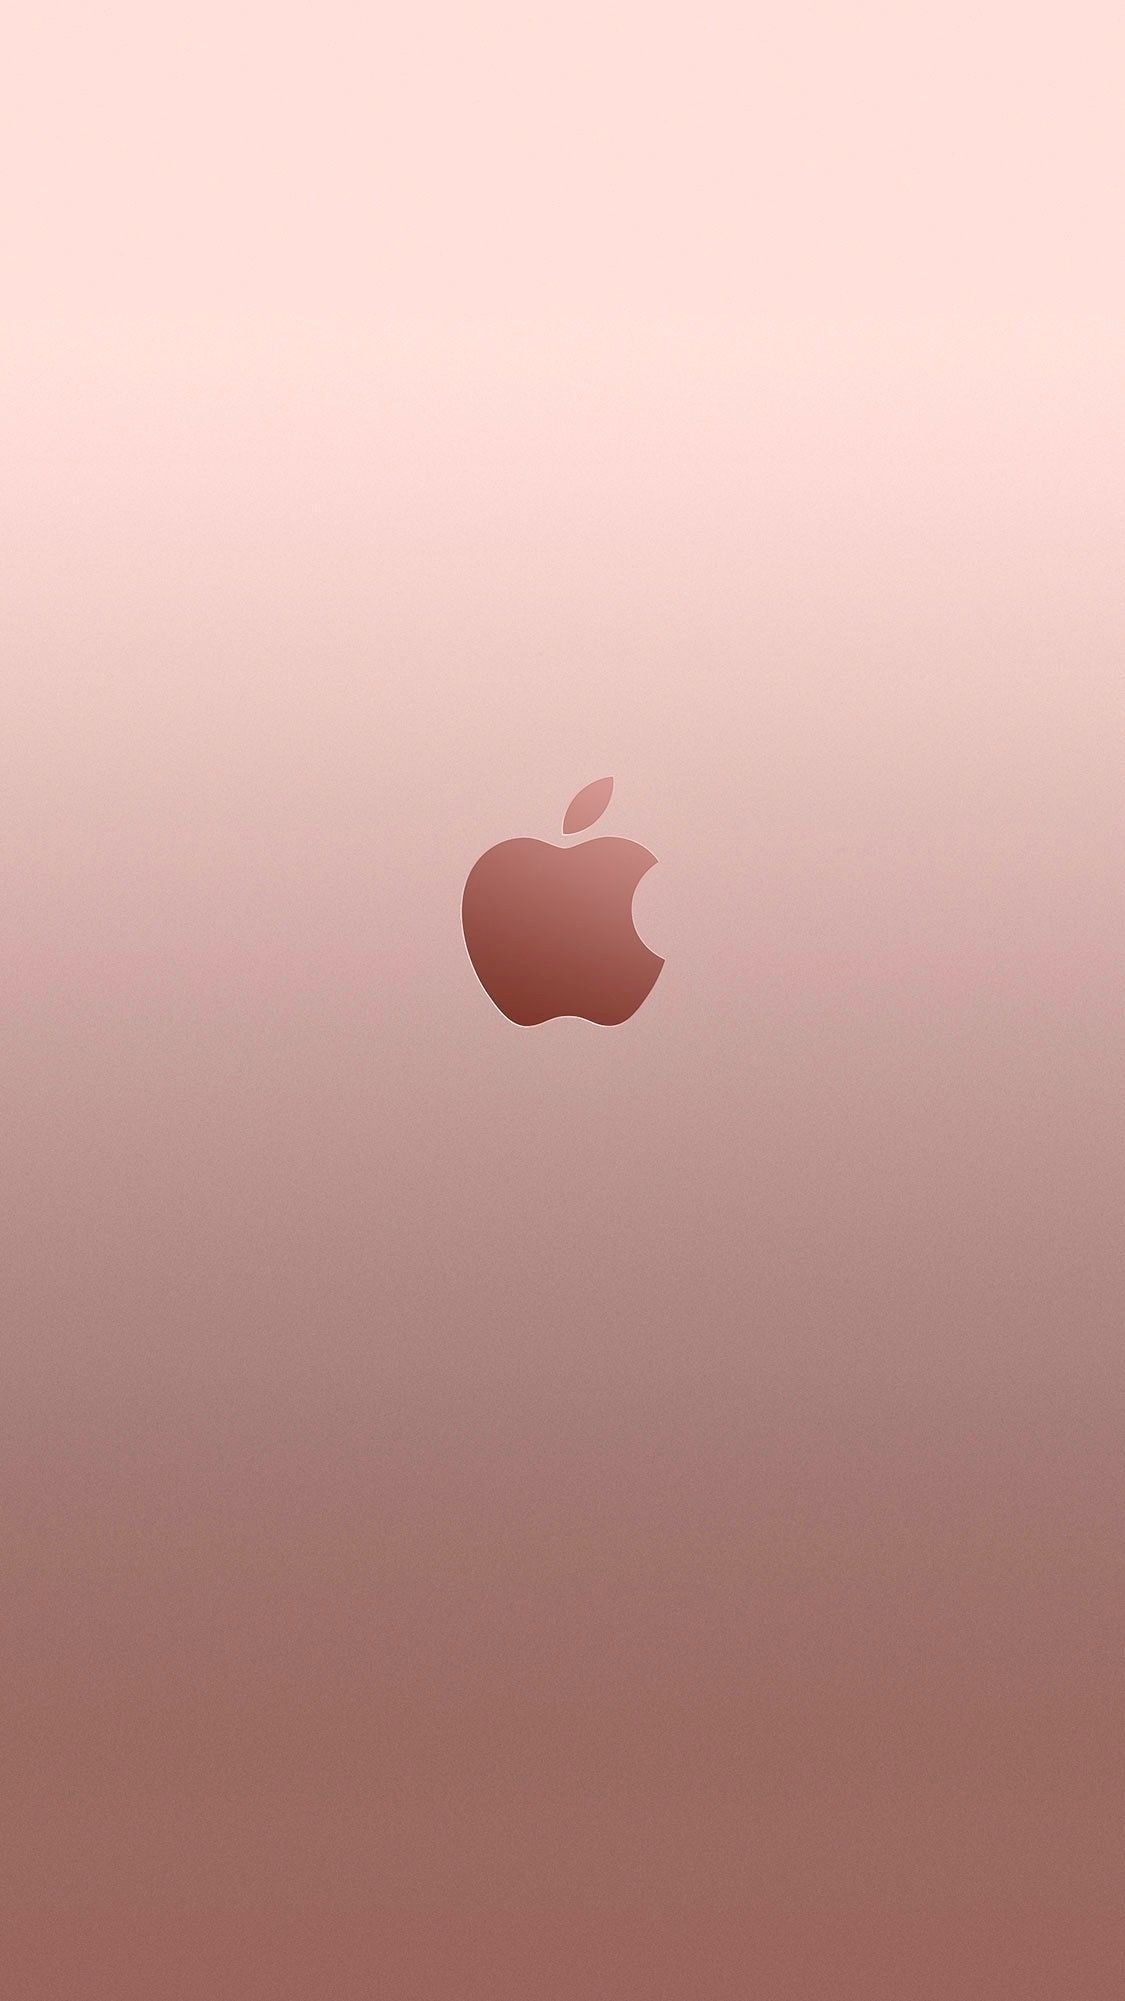 Iphone Rose Gold Wallpapers Top Free Iphone Rose Gold Backgrounds Wallpaperaccess